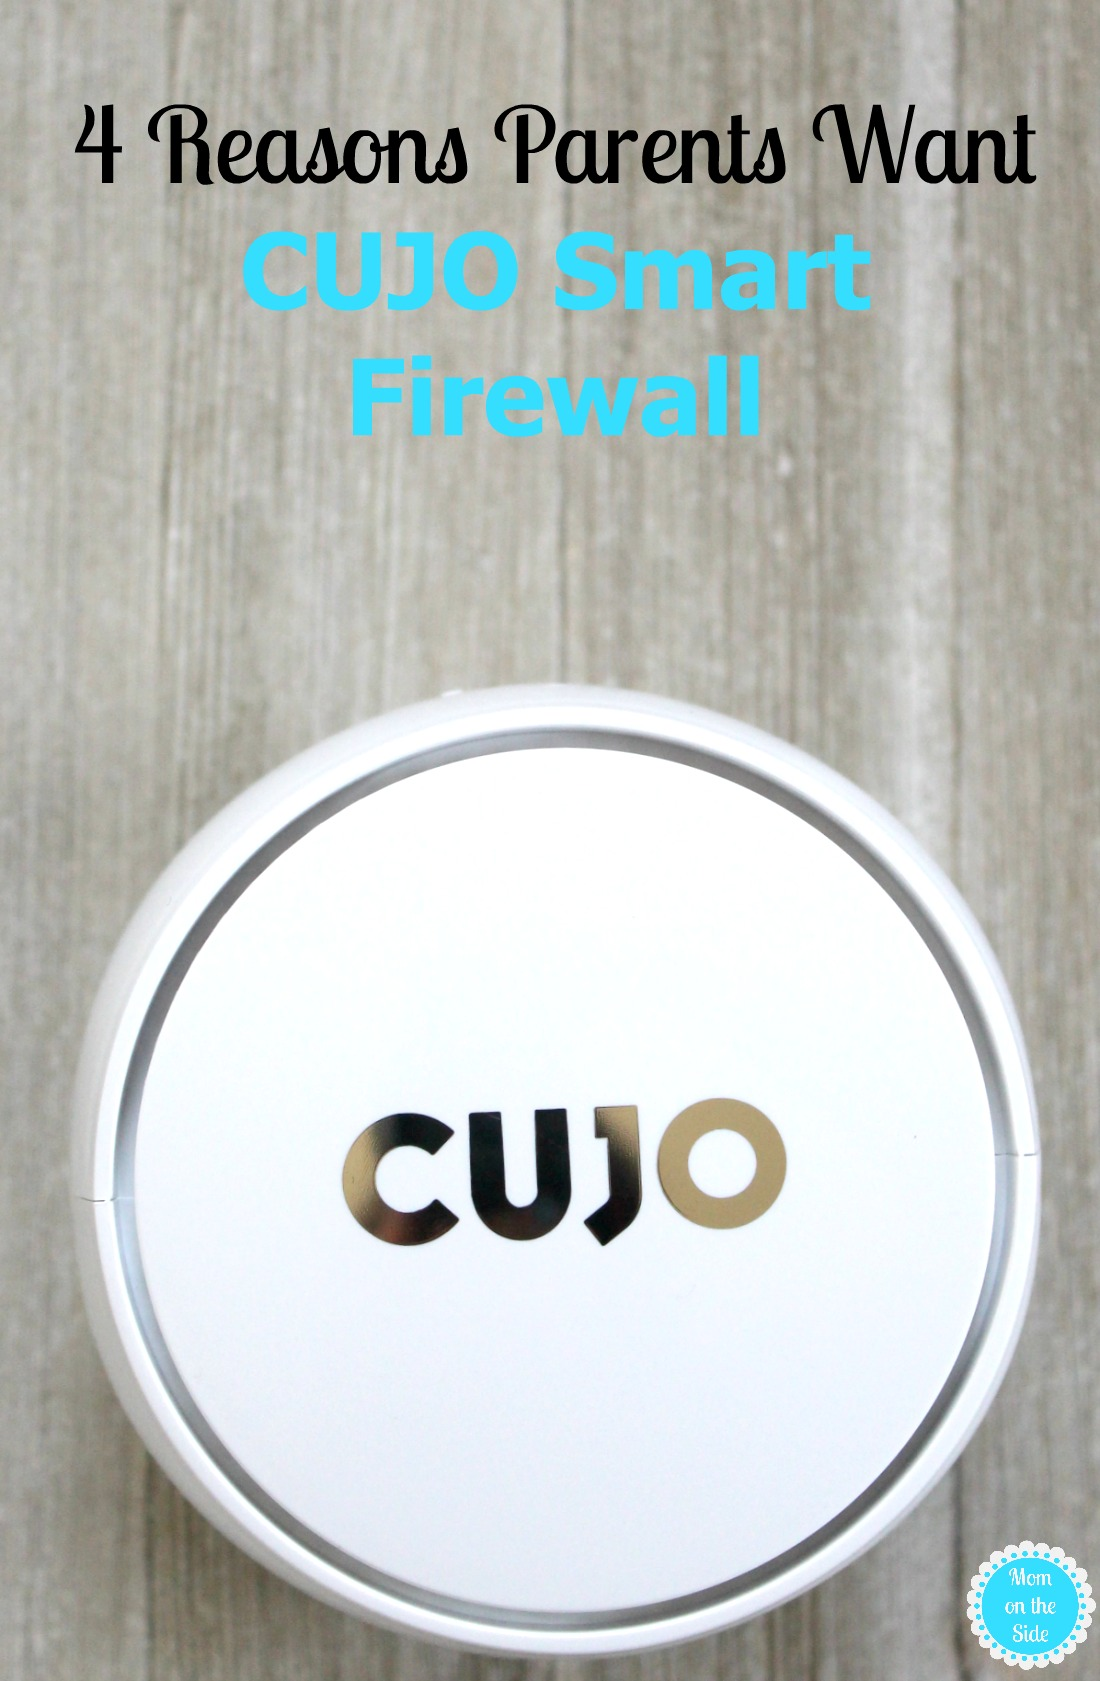 Why Parents Want CUJO Smart Firewall